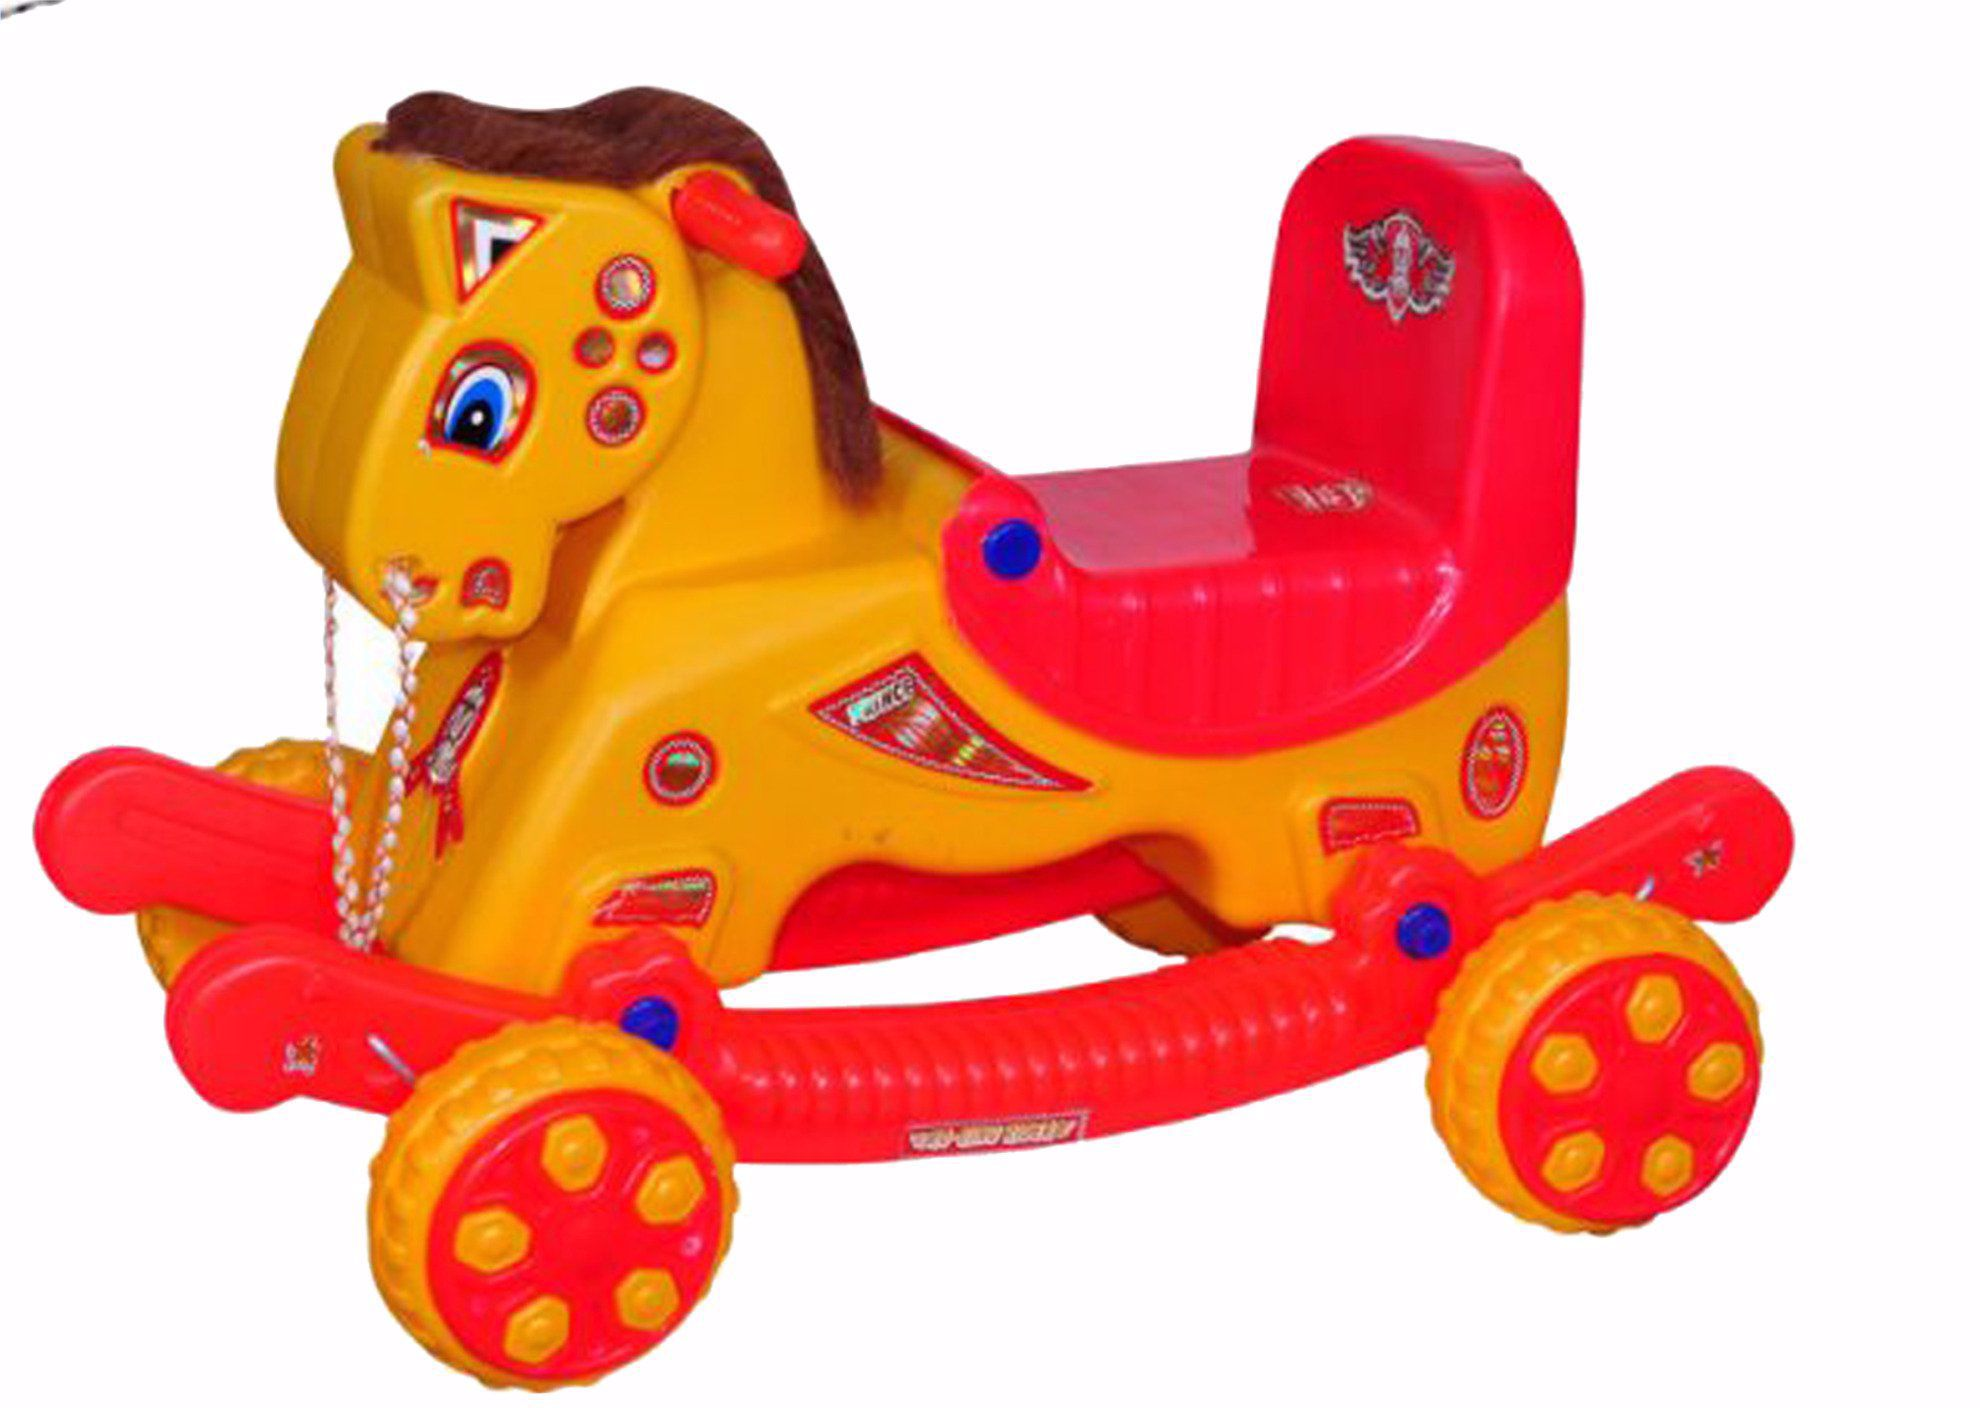 MUSICAL BABY RIDER -Yellow & RedMUSICAL BABY RIDER -Yellow & Red, musical baby rider online